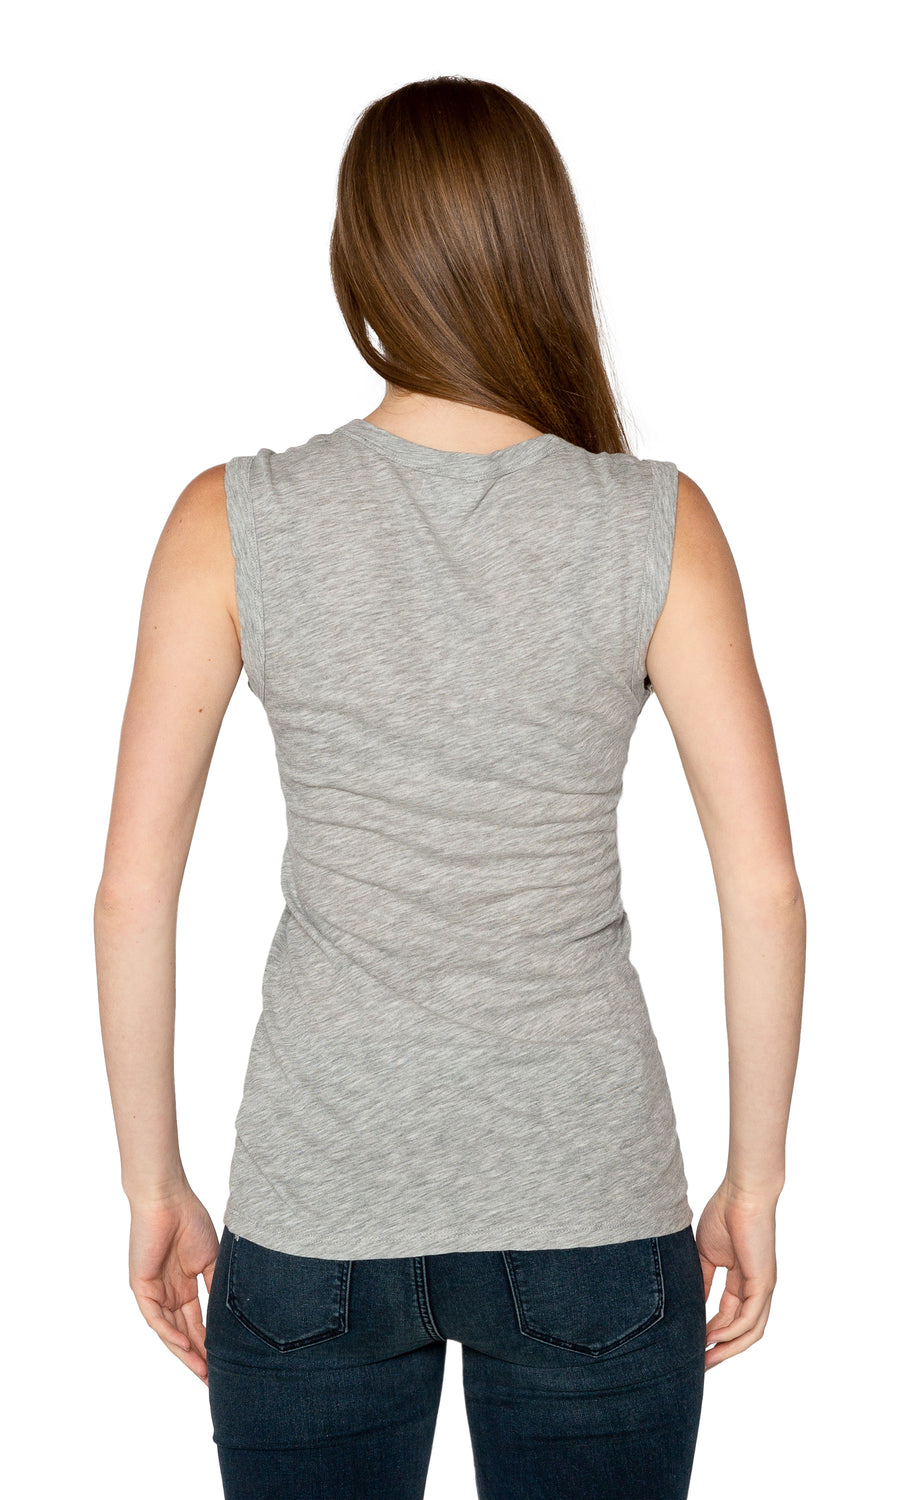 Velvet by Graham & Spencer Estina05-L Gauzy Whisper Scoop Neck Tank Top - LHG